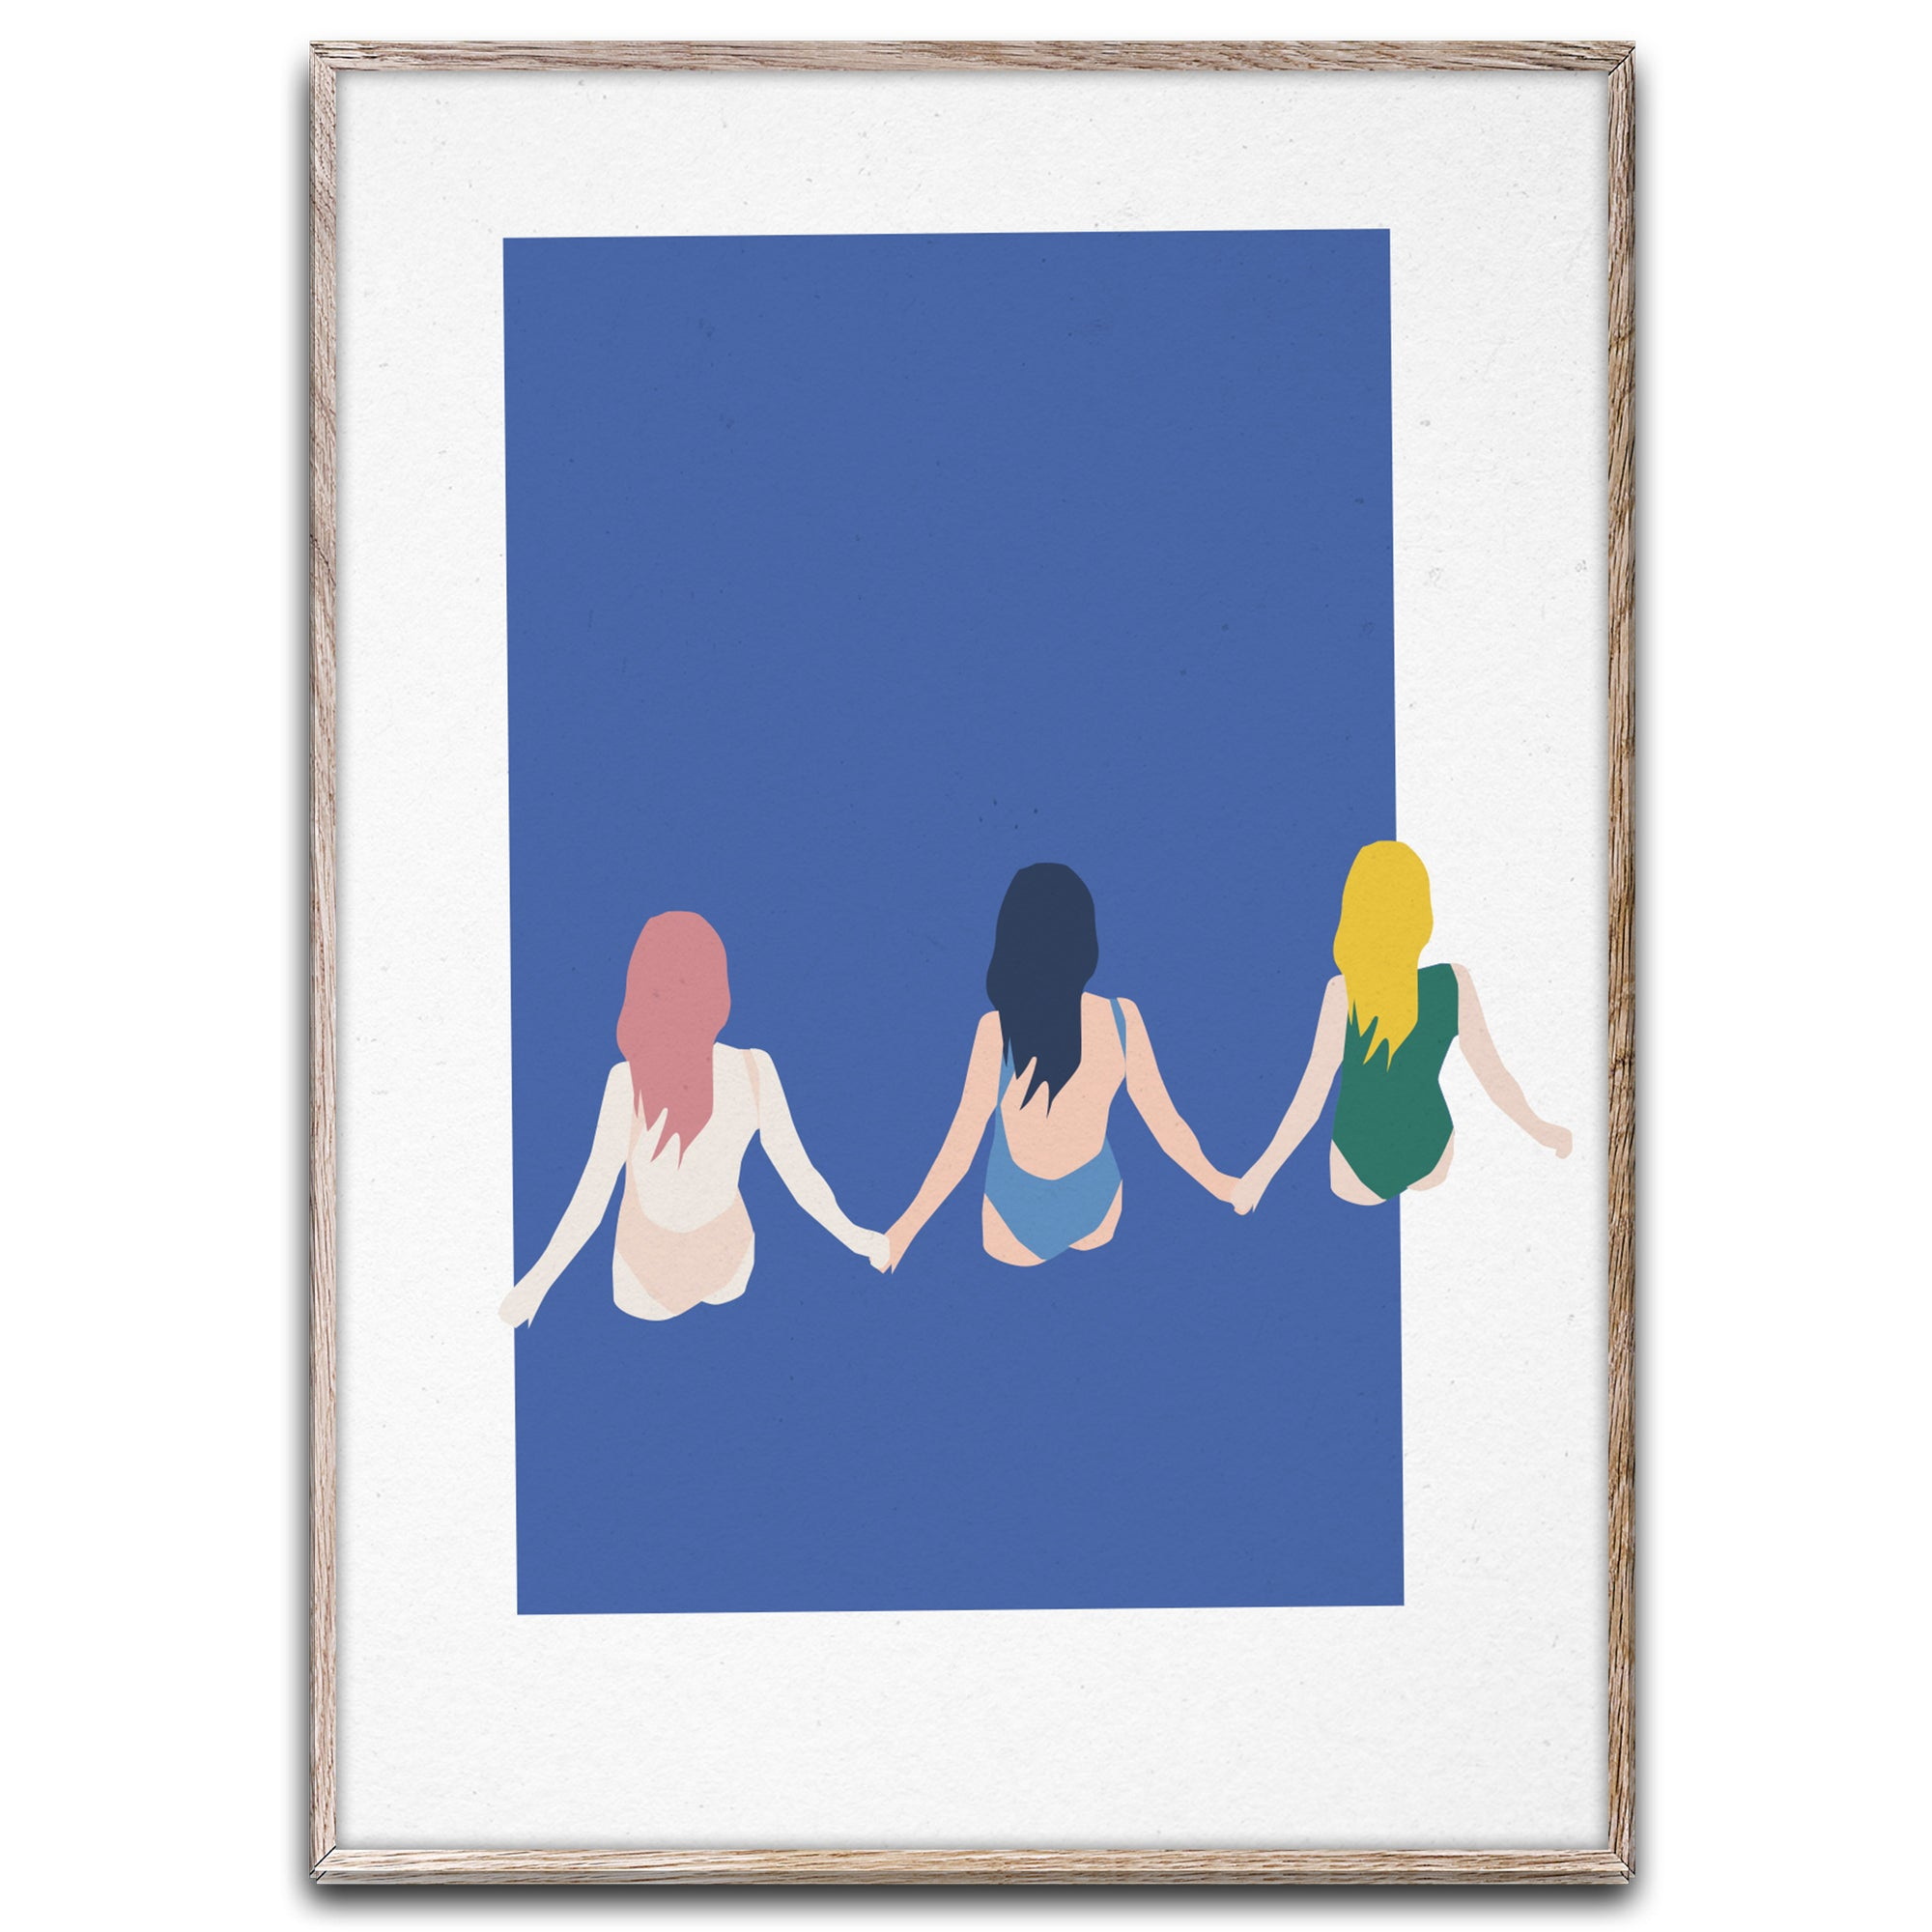 Paper Collective Girls Poster - Scandi Minimal